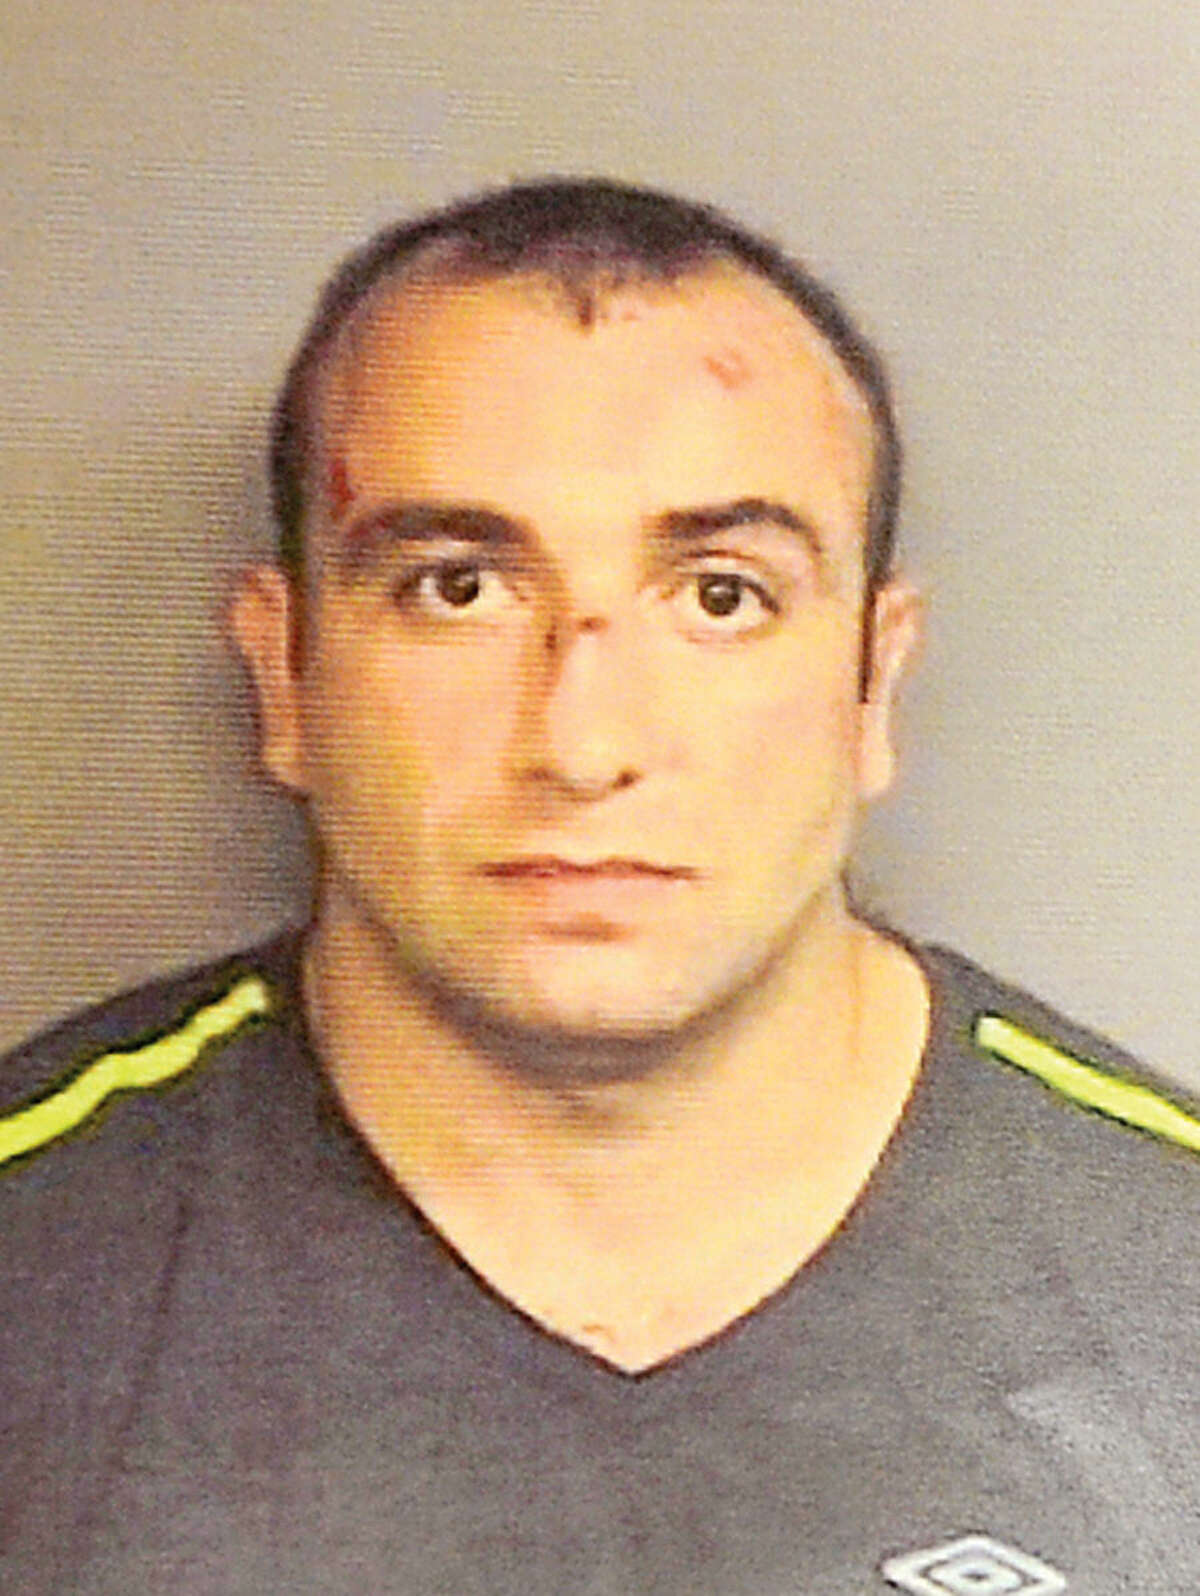 Stamford police announce the capture of suspect, Shota Mekoshvili, in connection with the murder of a stamford cab driver early Thursday morning.